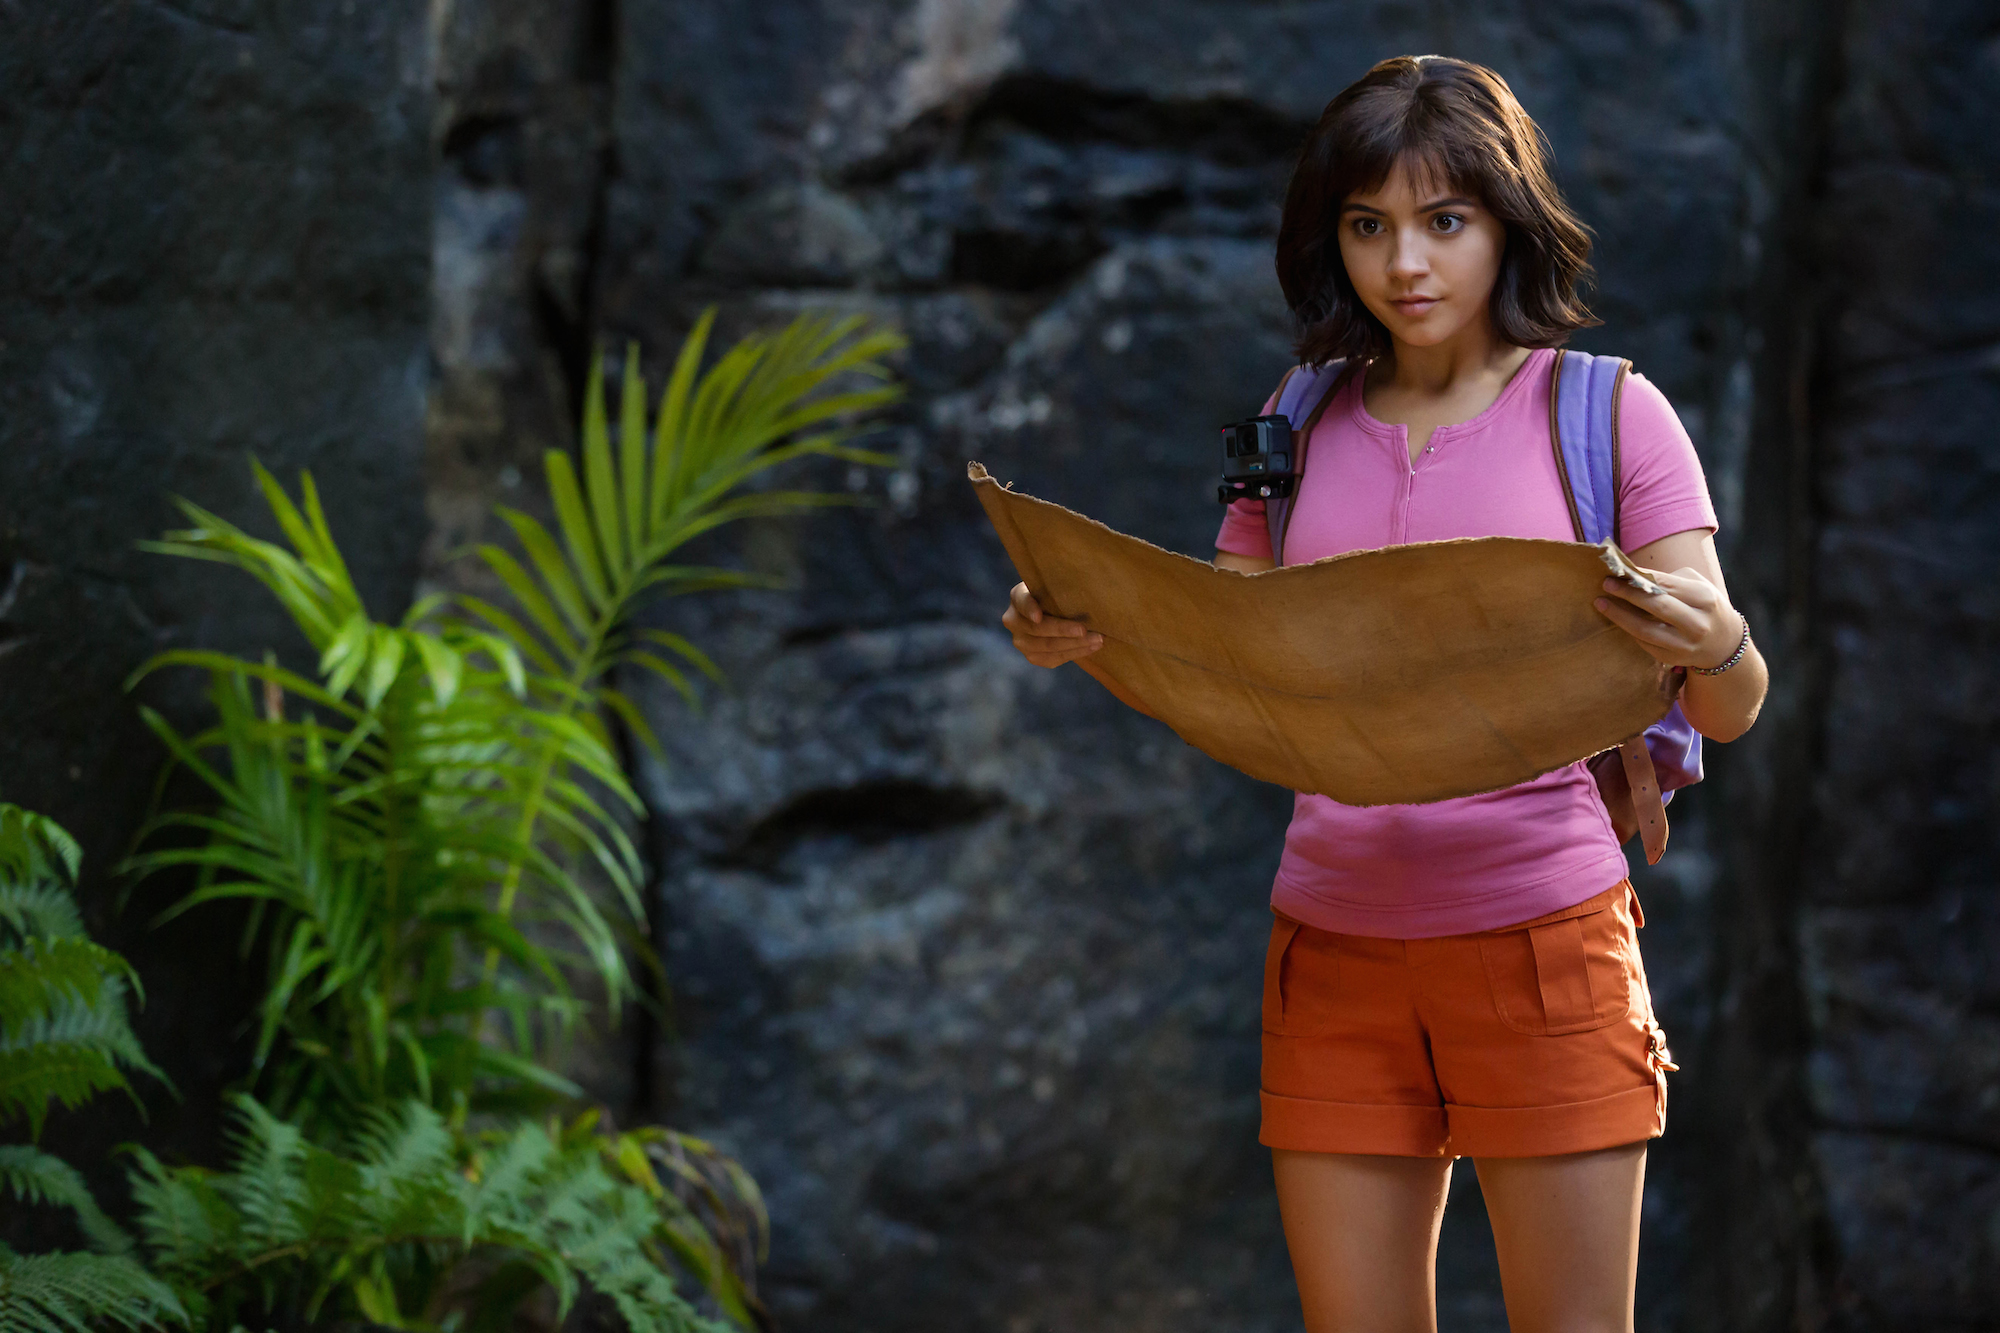 The Action-Packed First Trailer for 'Dora and the Lost City of Gold' Is Here